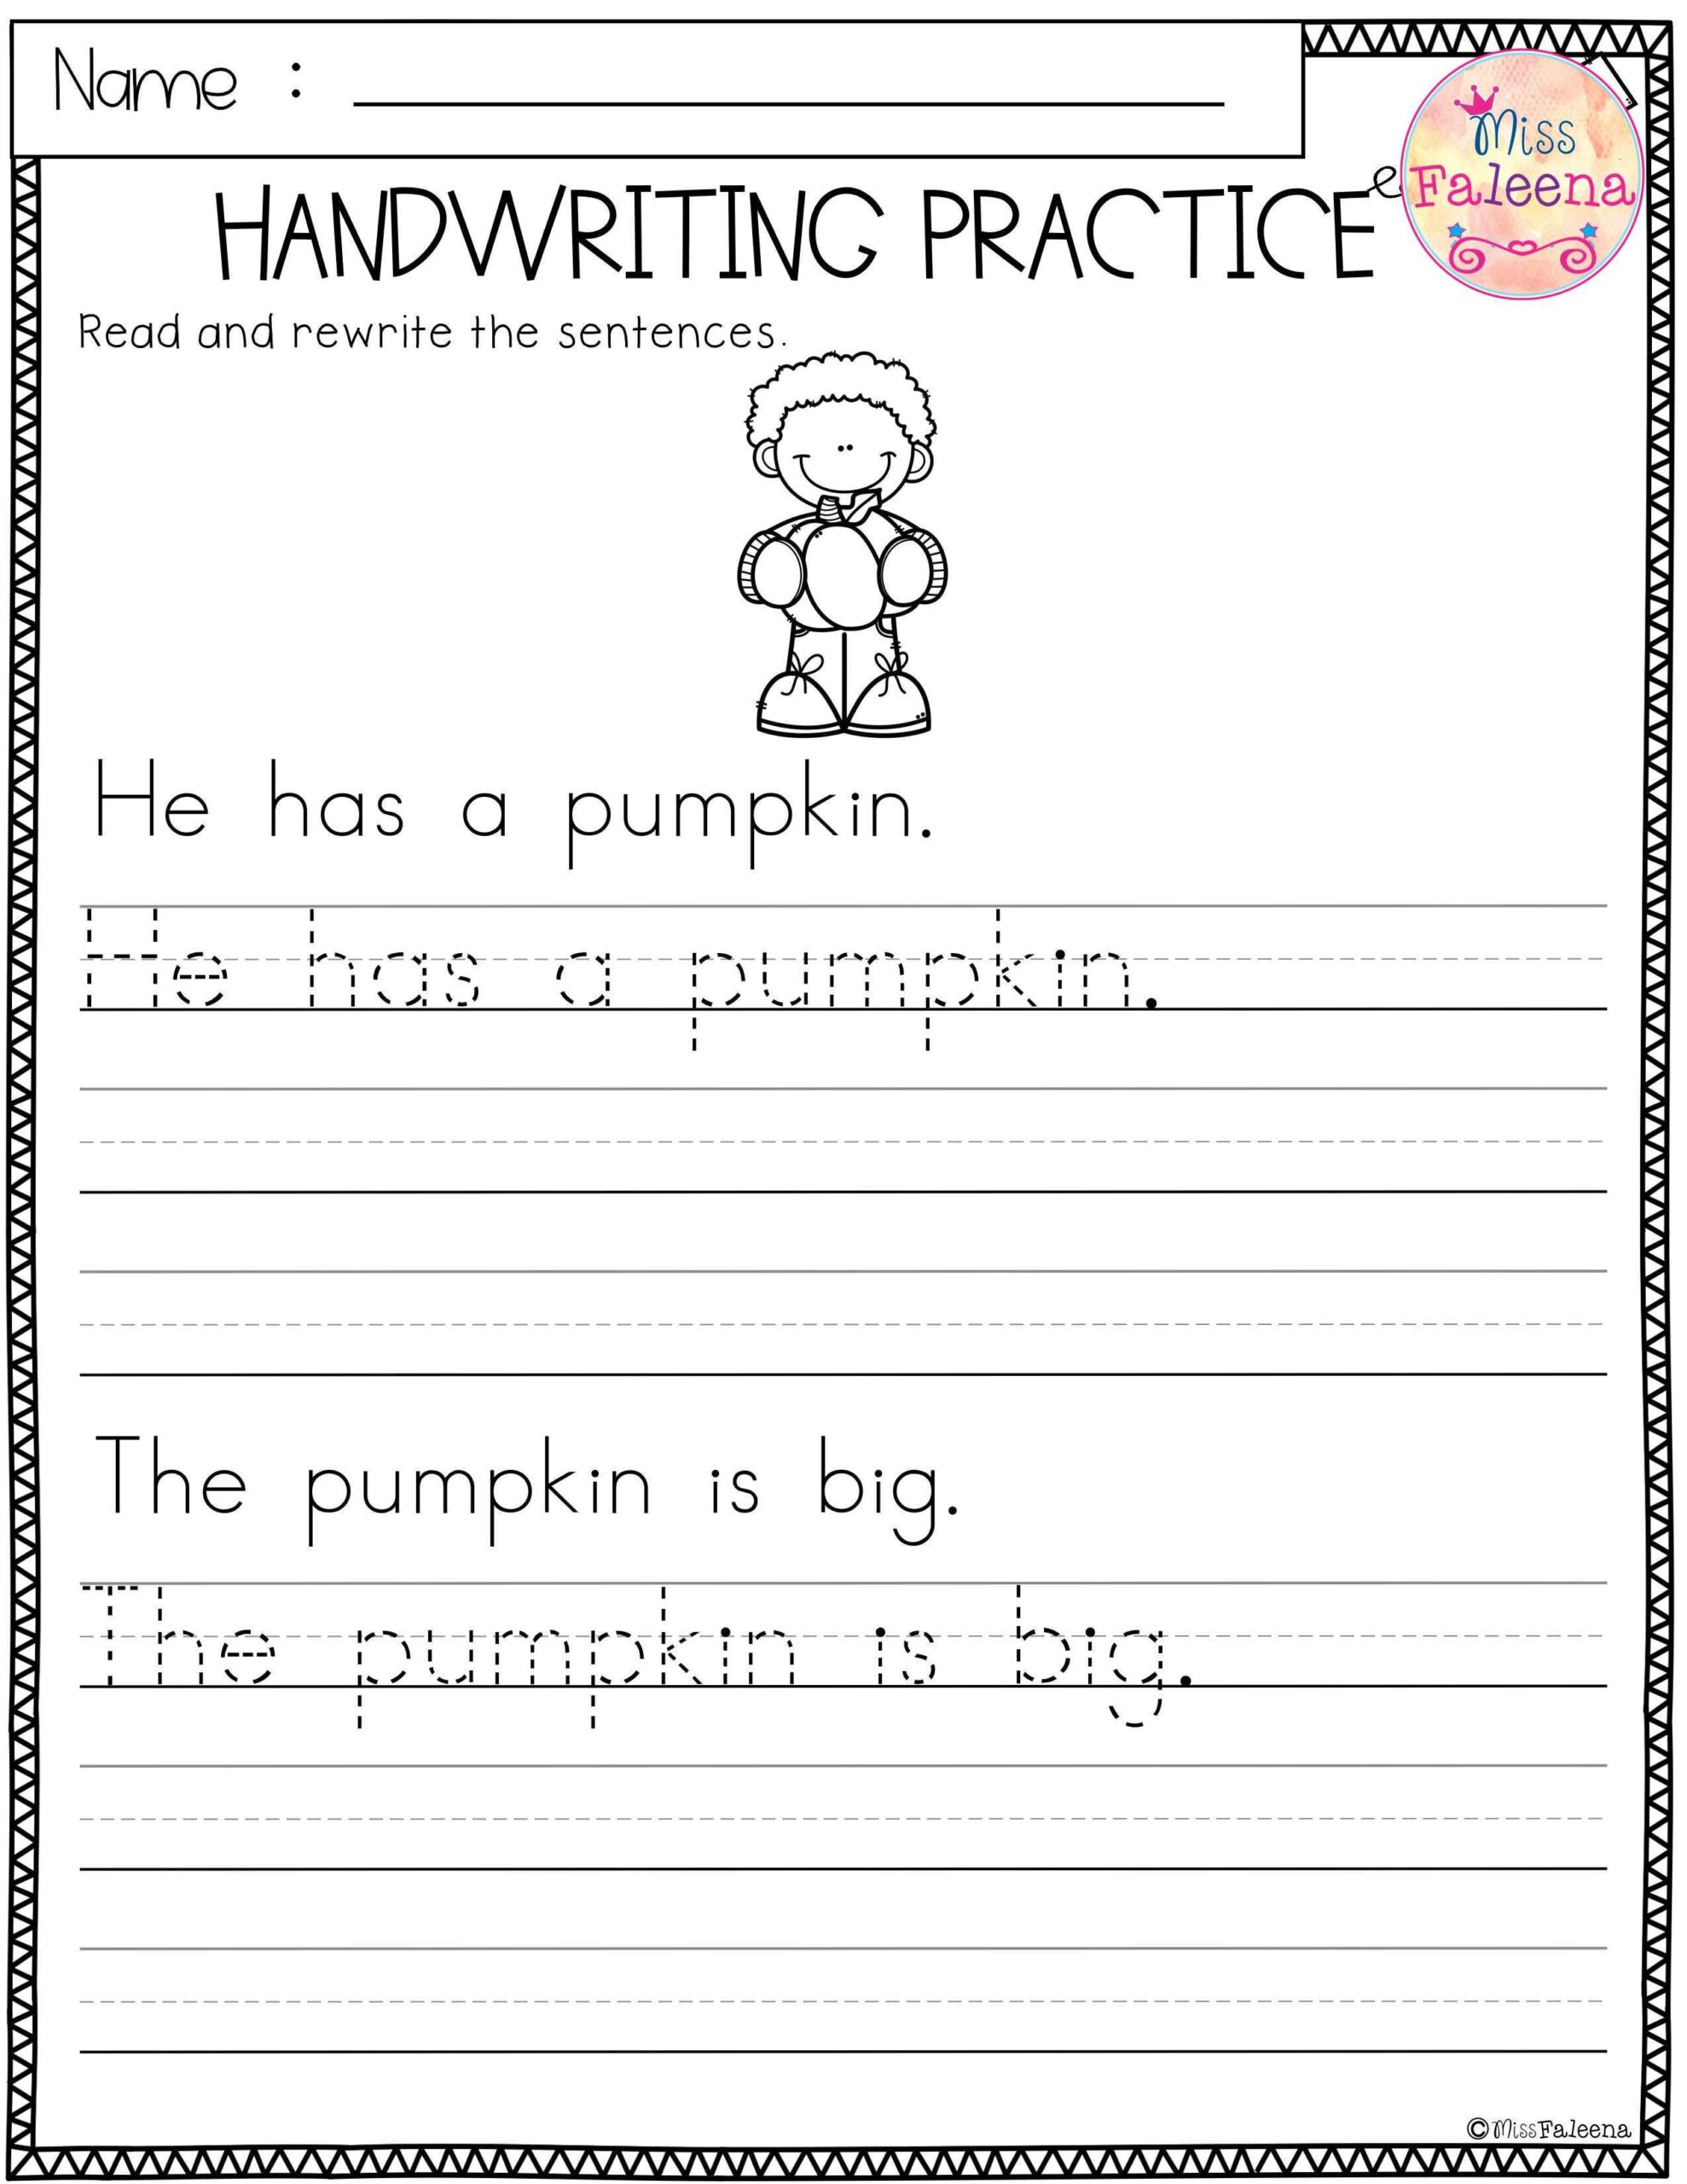 Free Printable Handwritingceracing Names Ernie Sheets Pages